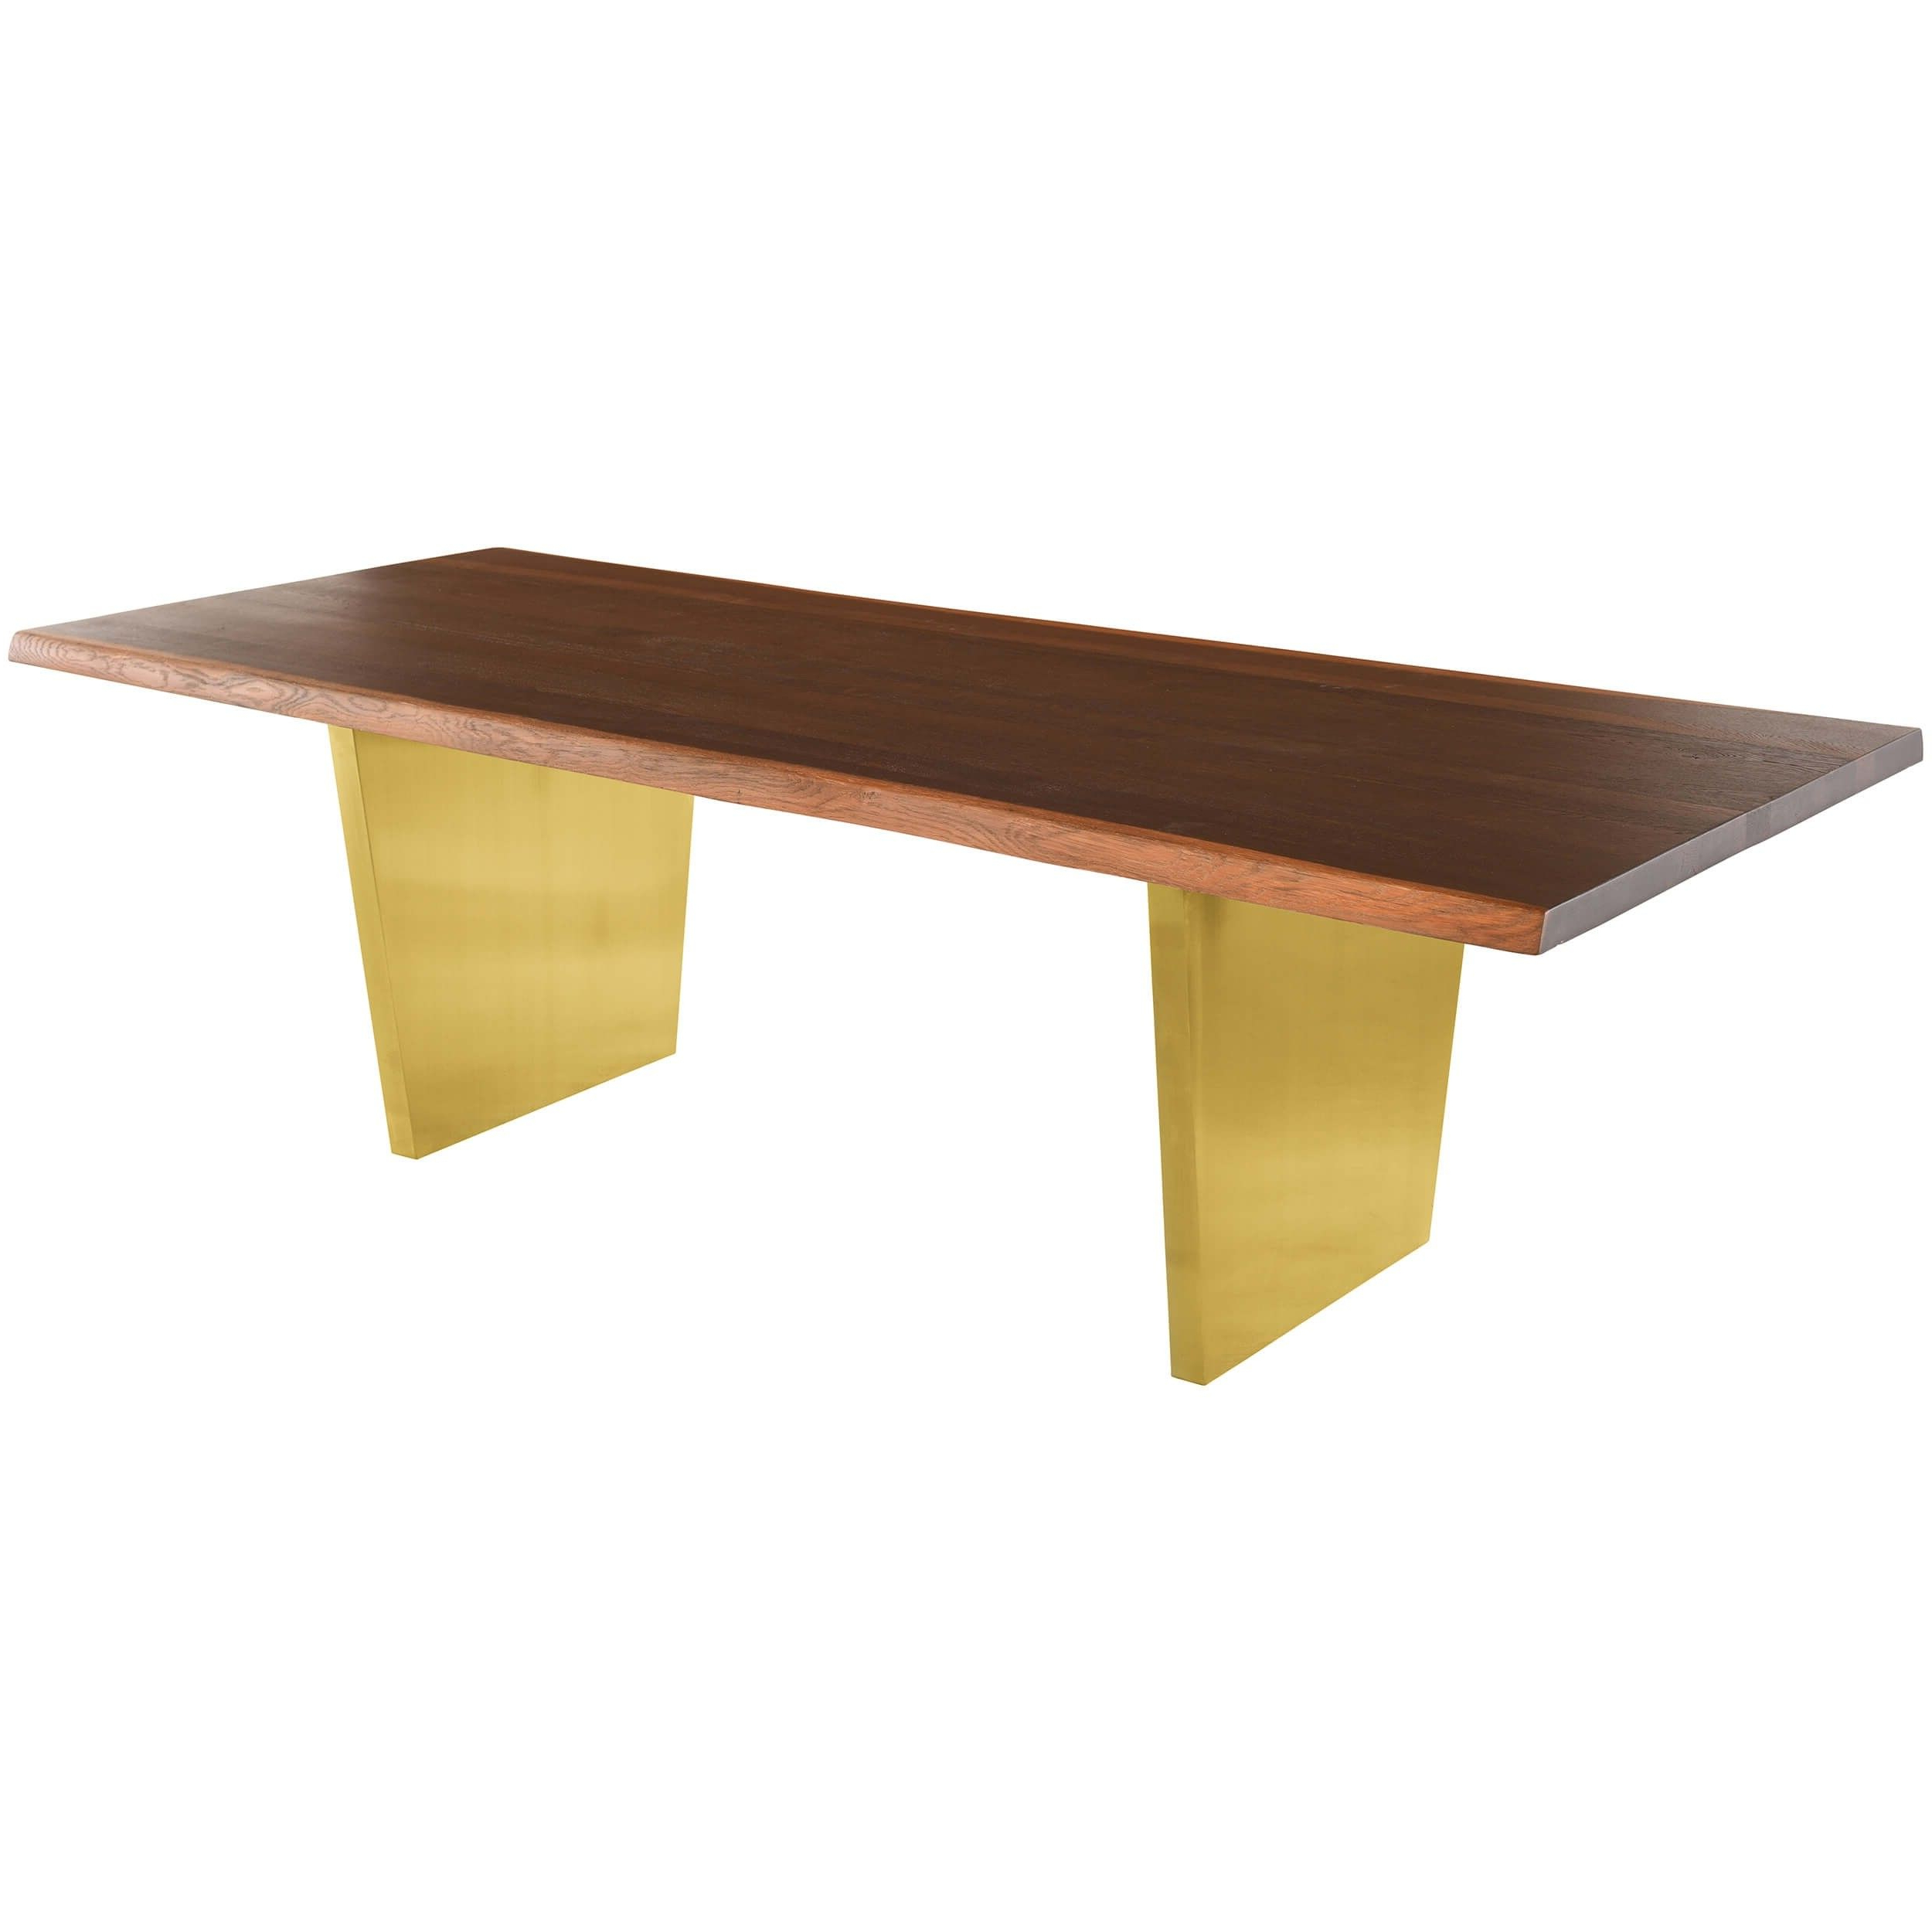 Aiden Dining Table, Seared Oak/brushed Gold Base – 78 In Famous Dining Tables In Seared Oak (View 17 of 25)